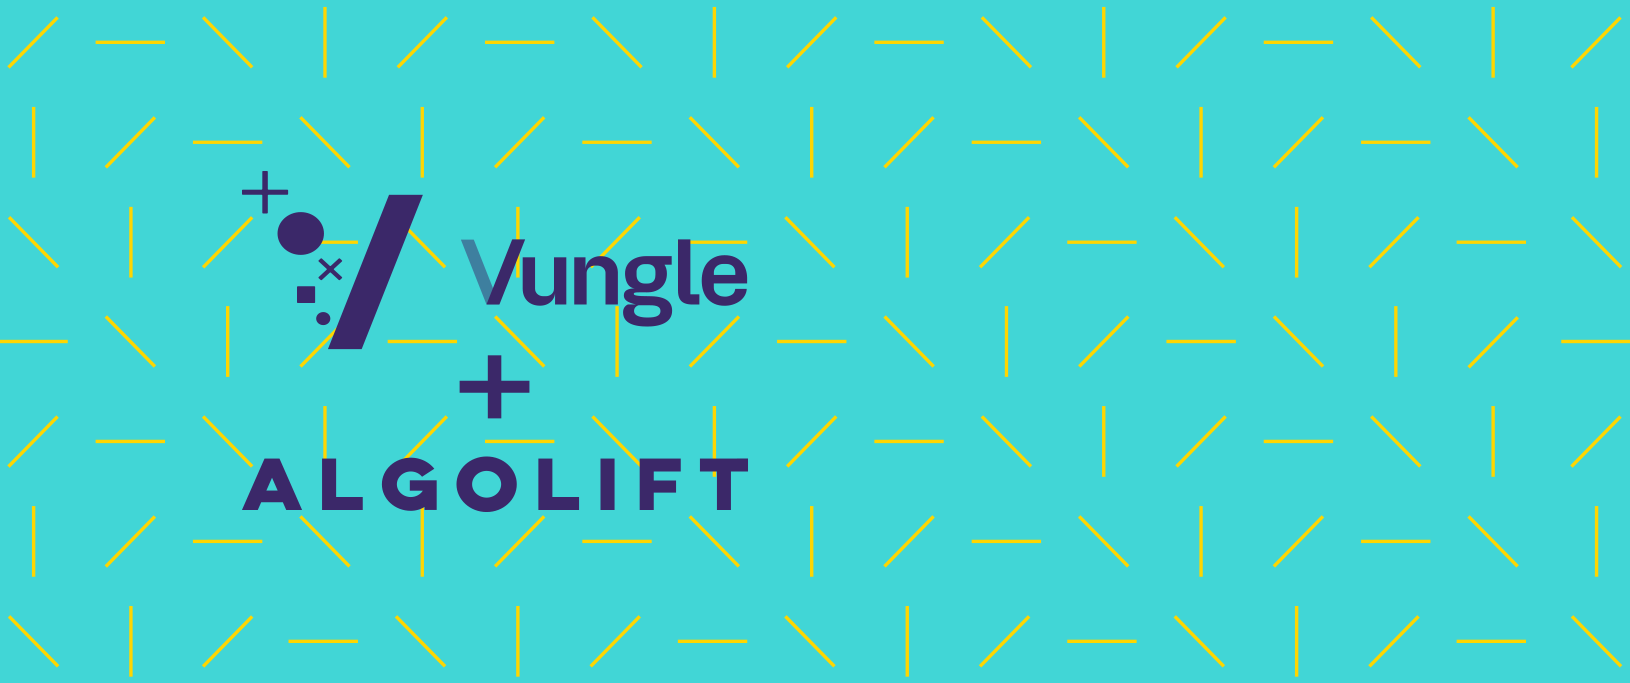 Vungle acquires AlgoLift Fresh from Vungle v2